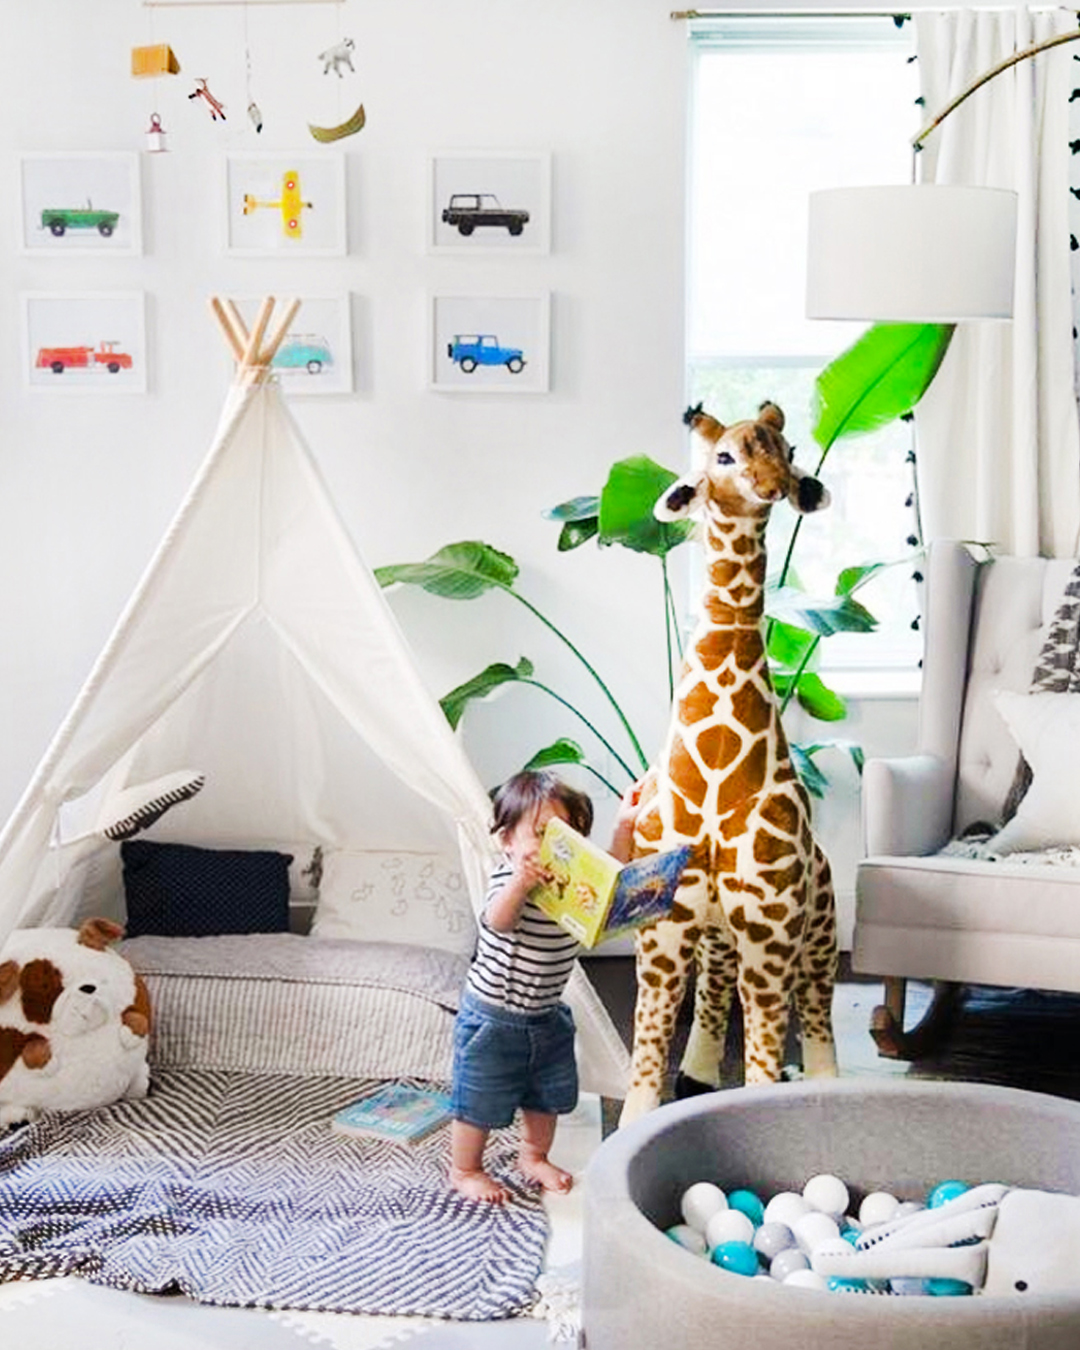 playroom-decor.jpg